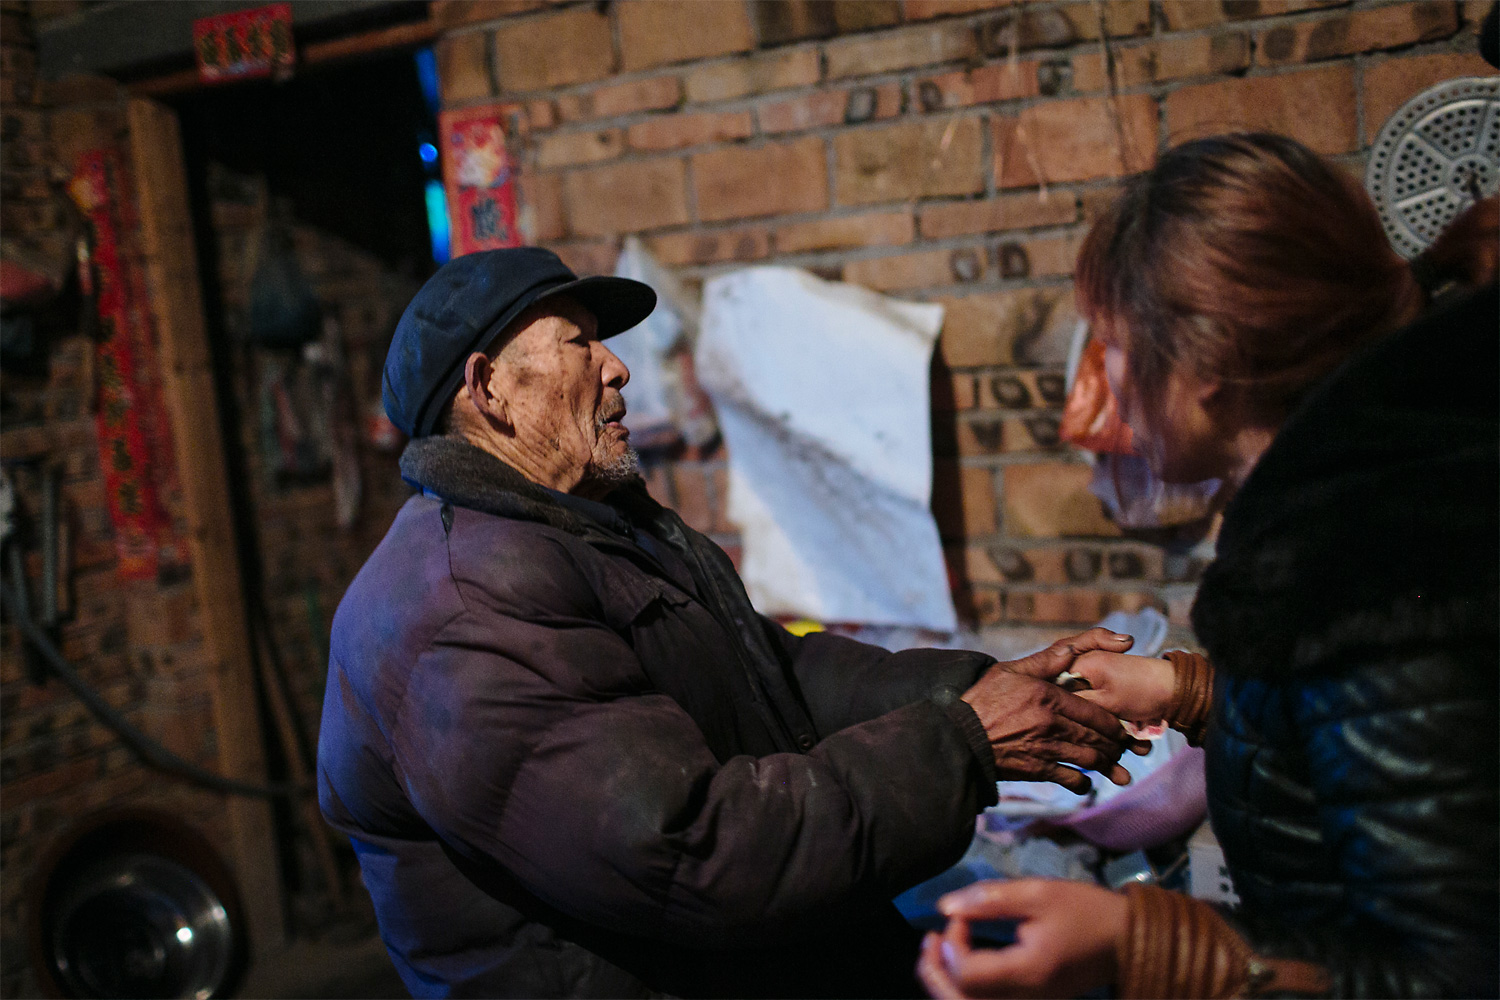 A village elder pays the family a visit and gives Ning Xianfang 160 renminbi (U.S.$25), nearly all of his 200 renminbi monthly income.